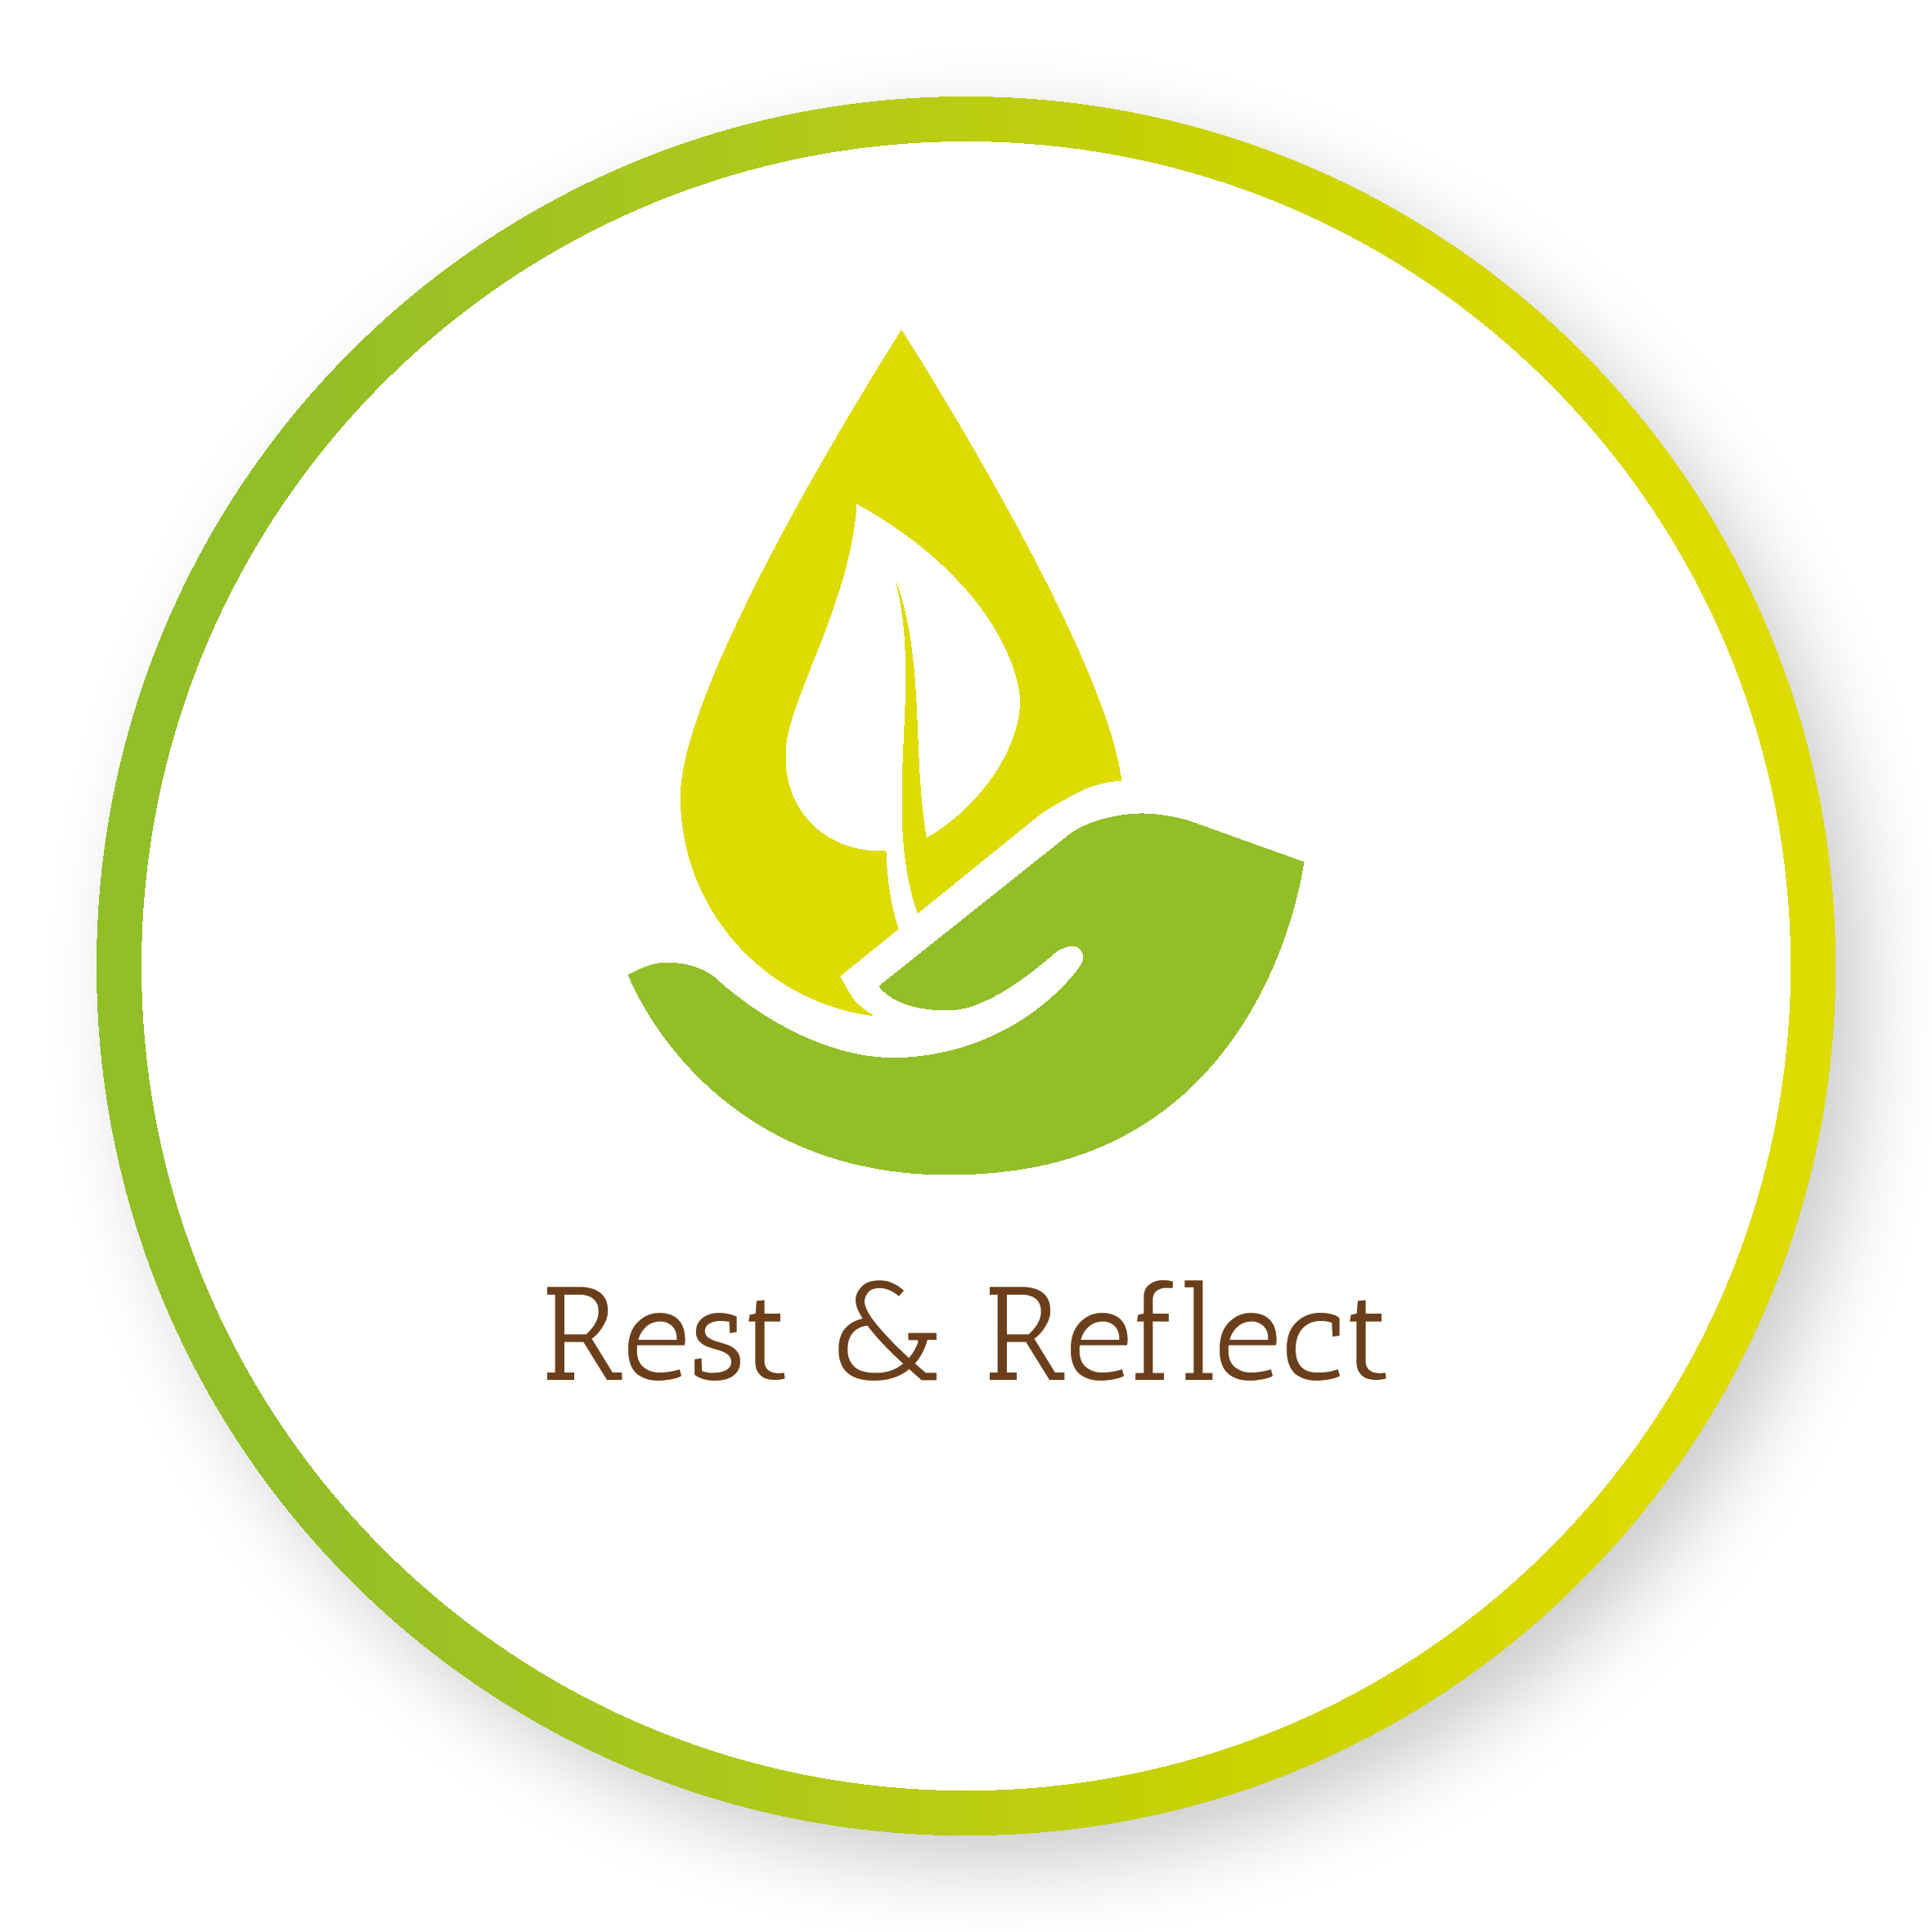 Rest & Reflect @ Lindengate